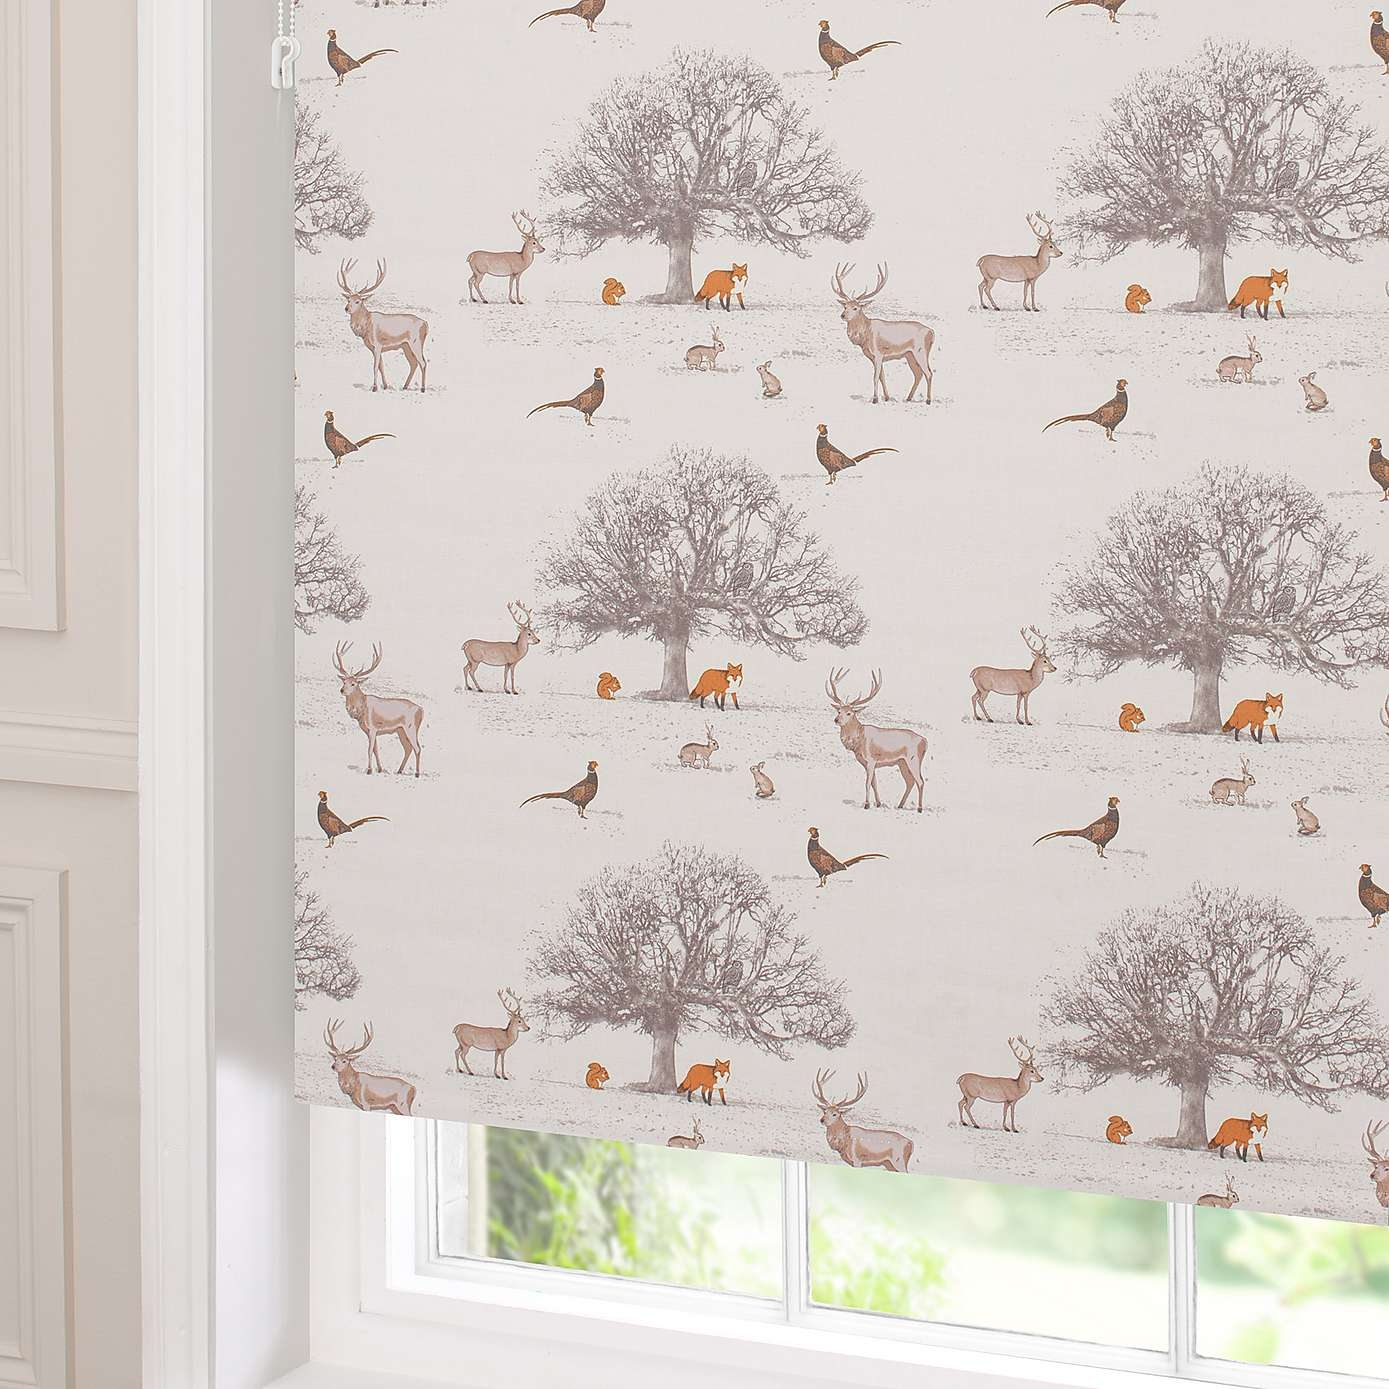 Tatton Blackout Roller Blind Dunelm Curtains Blinds In Pattern Roller Blinds (View 9 of 15)